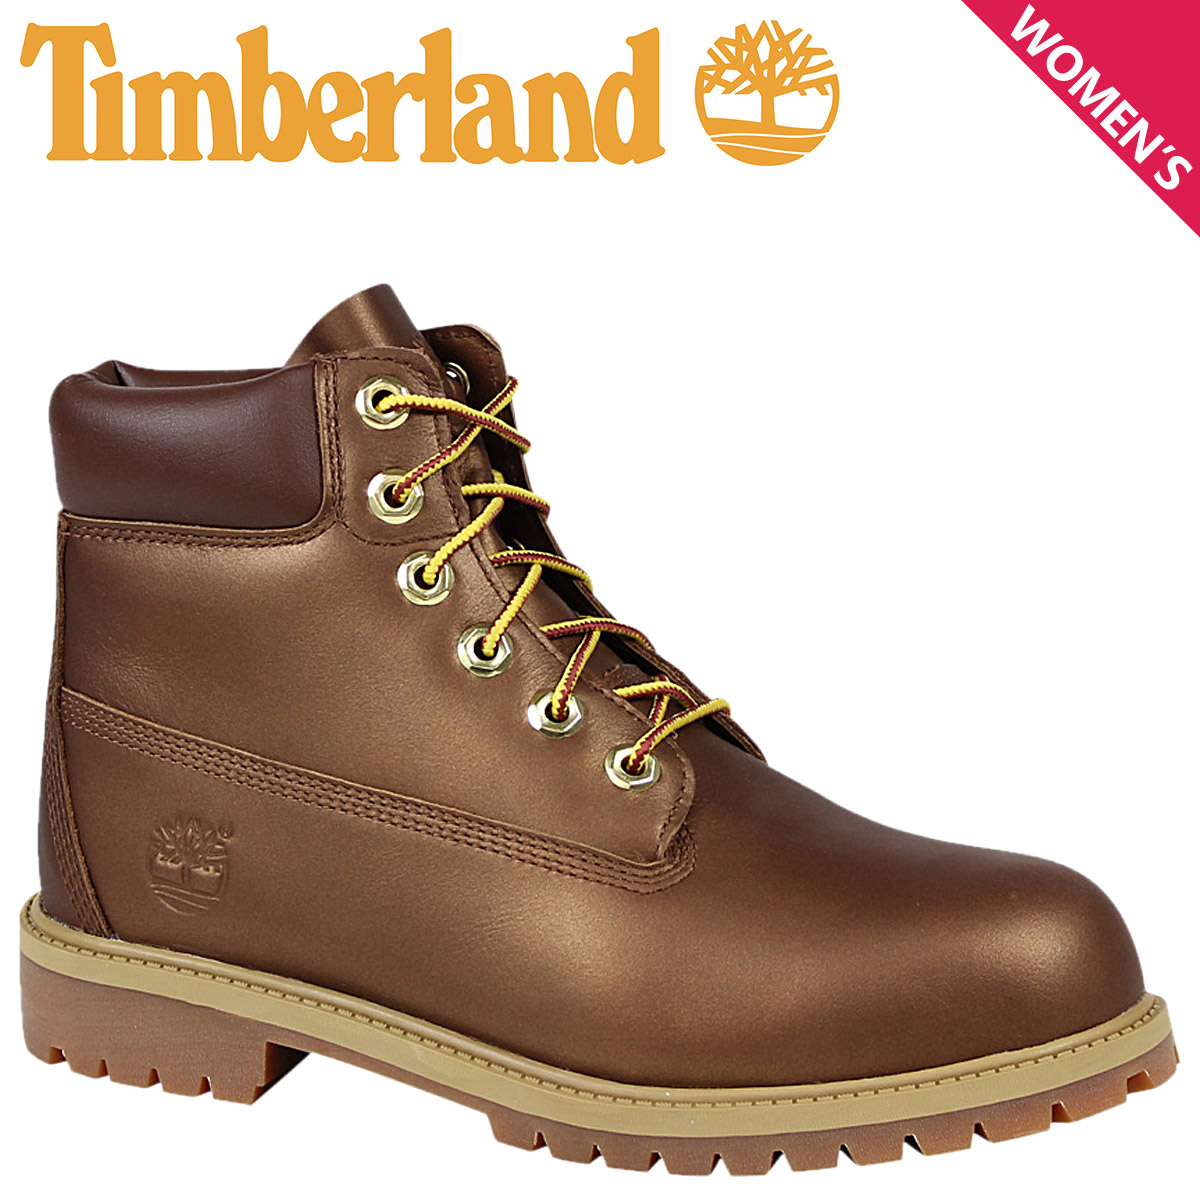 fb07a49a79c6 Women s Timberland Timberland 6 INCHI 6 inch premium boots WOMEN S 6-INCH  PREMIUM WATERPROOF BOOTS A19XM W wise waterproof Brown  10 3 new in stock